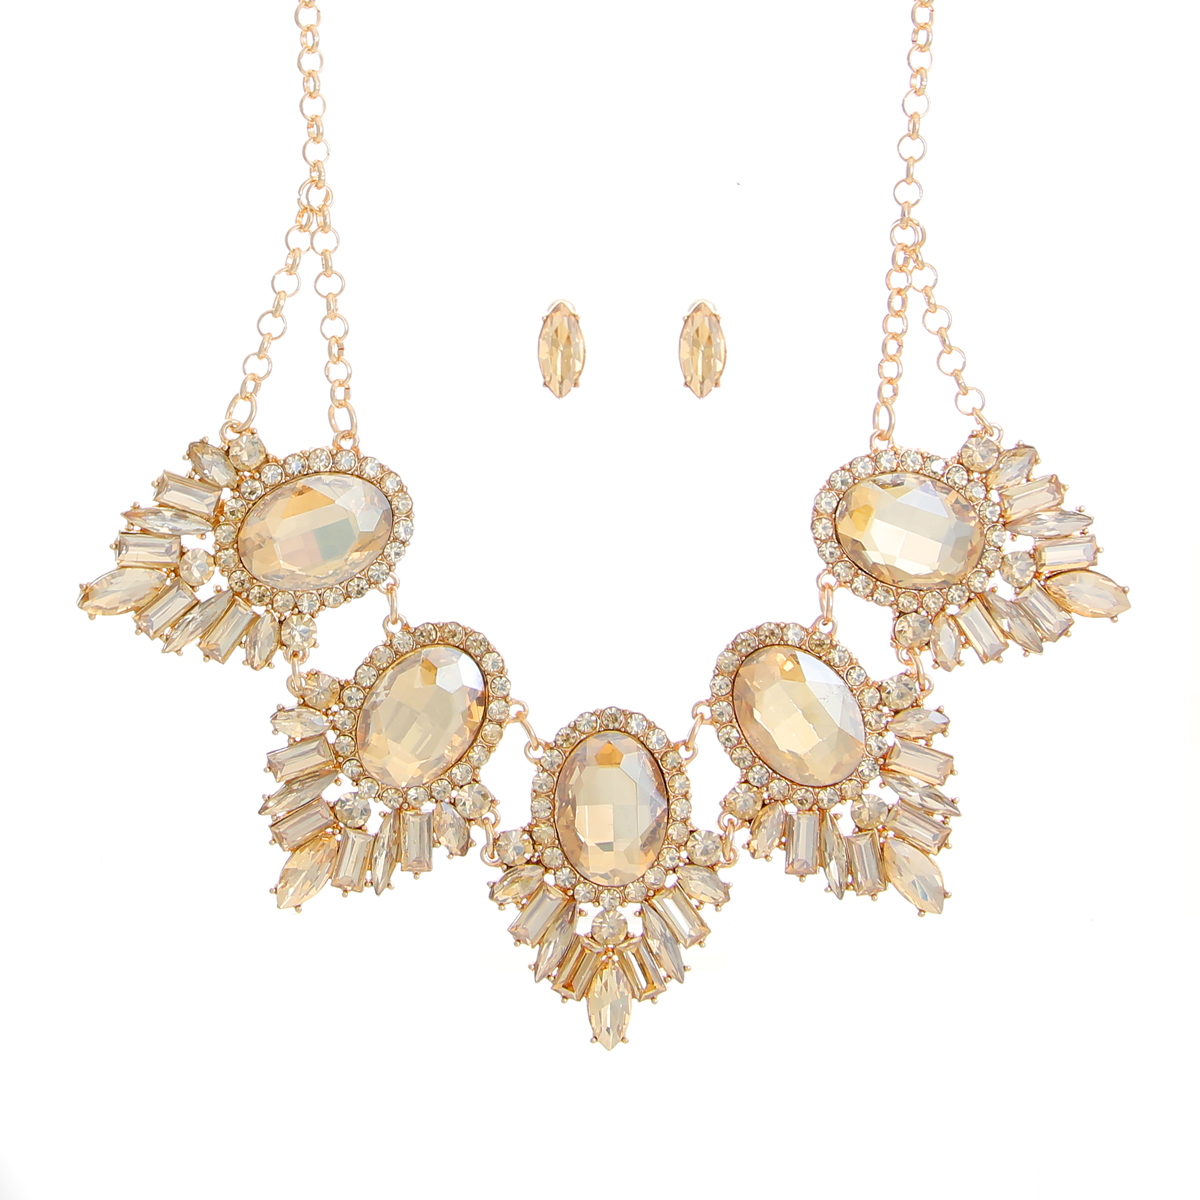 J2165_NecklaceSet_Champagne_lux